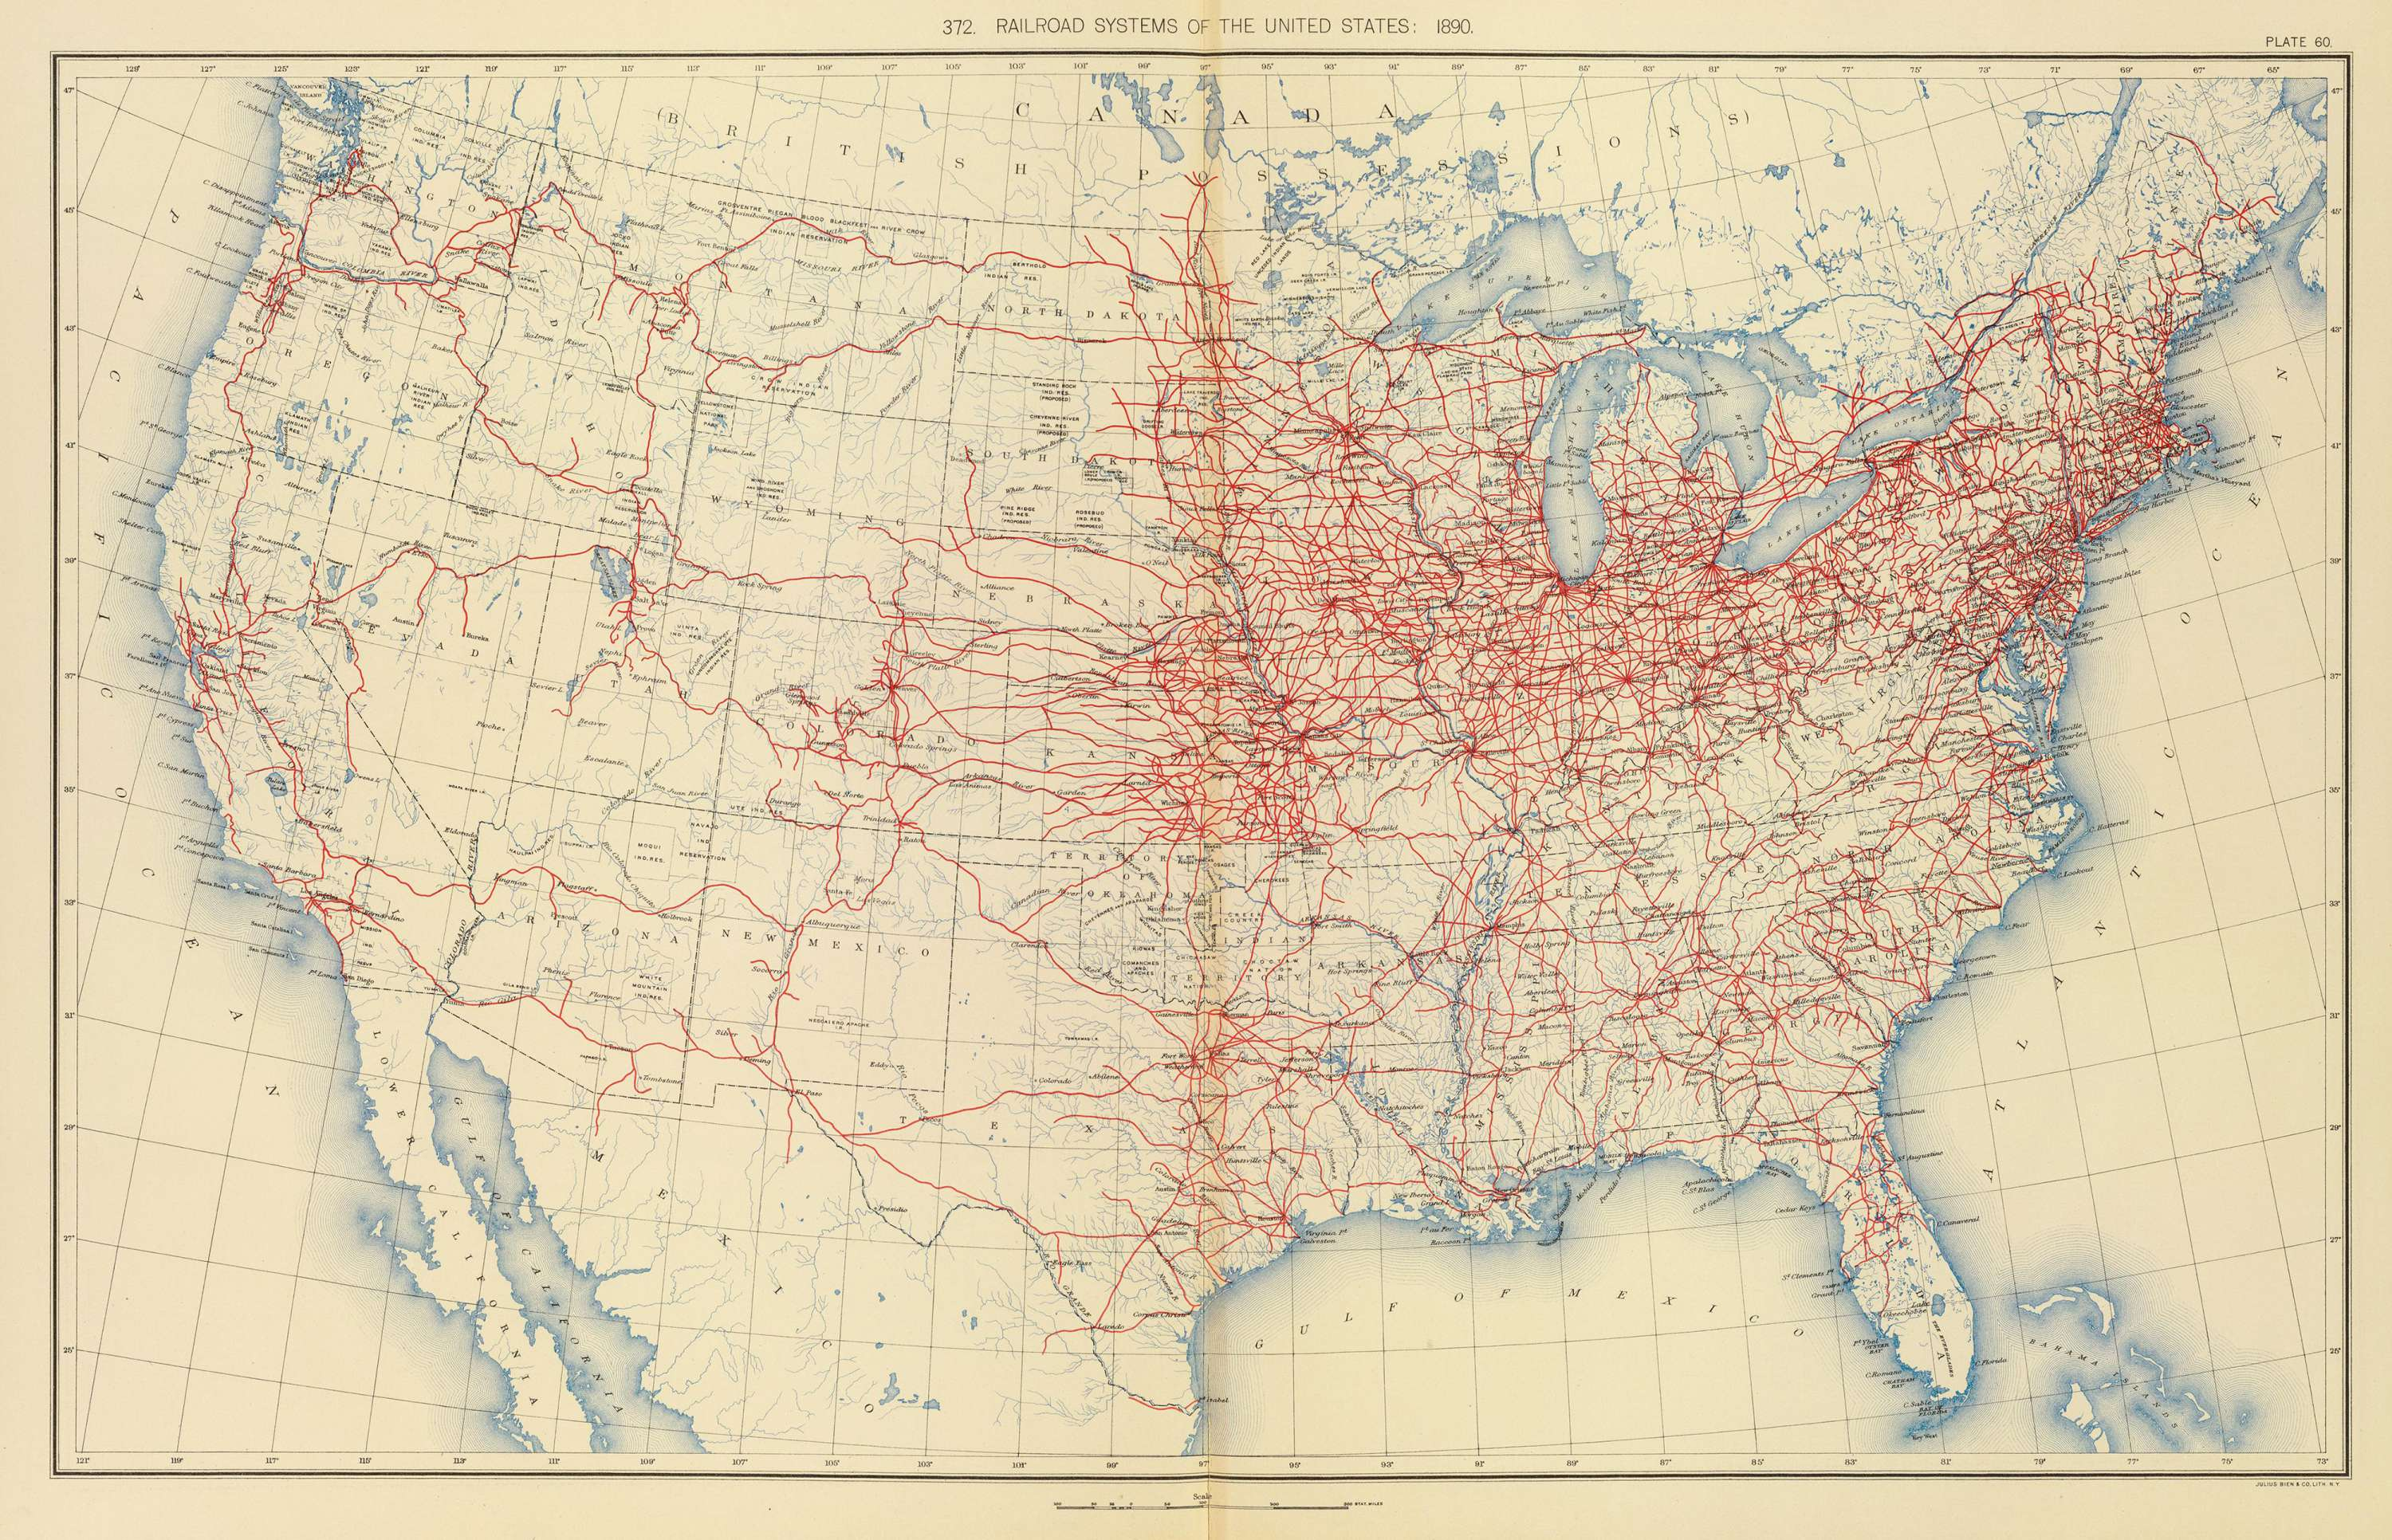 Railroad systems 1890